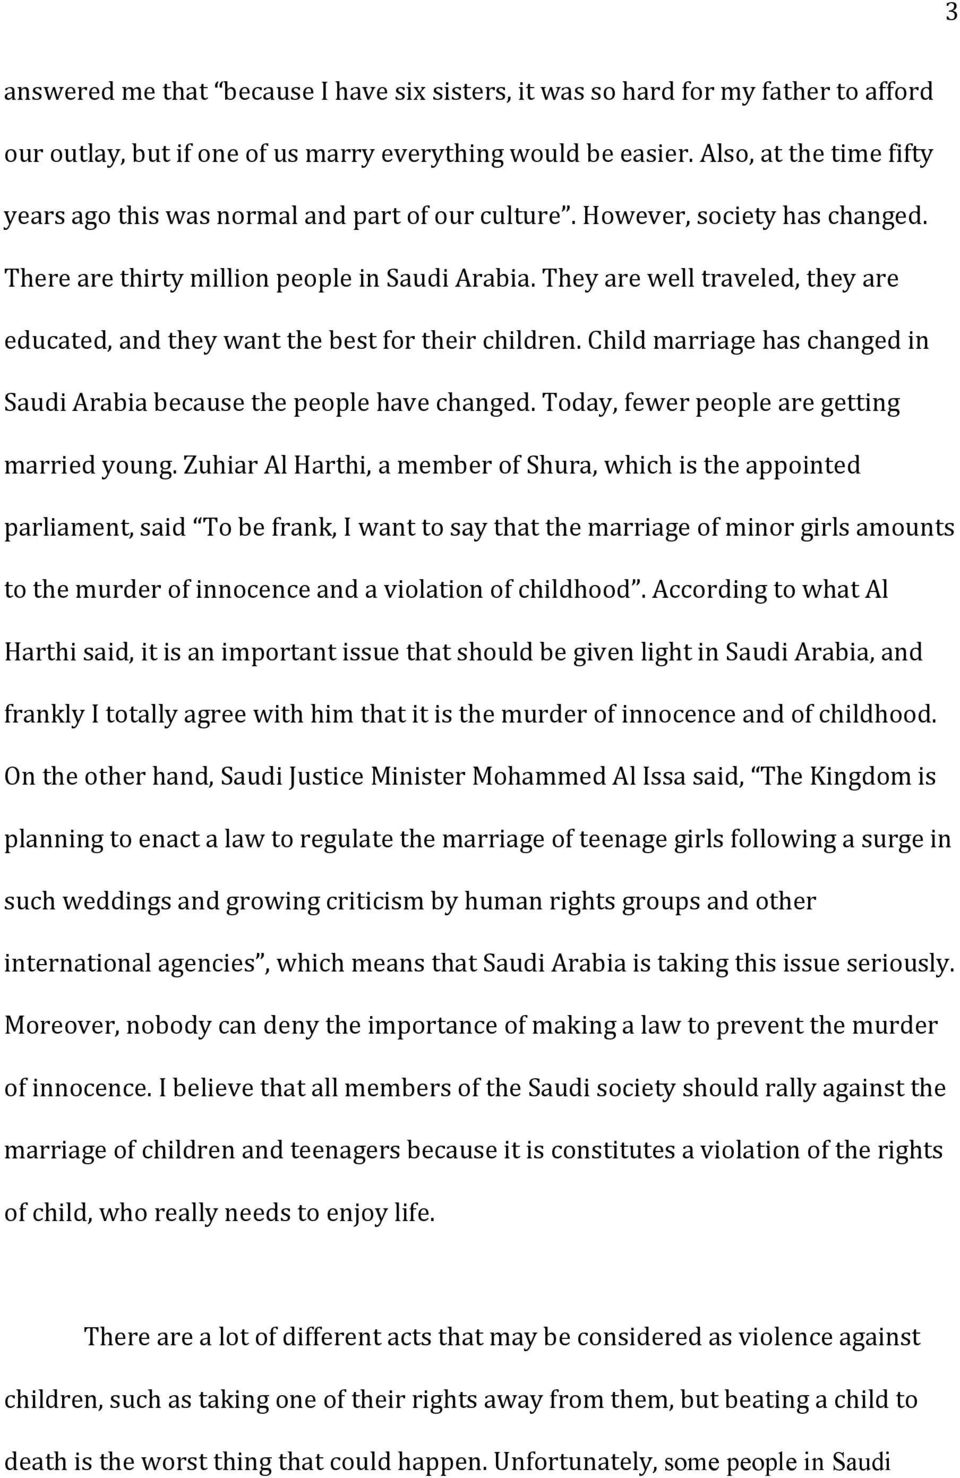 They are well traveled, they are educated, and they want the best for their children. Child marriage has changed in Saudi Arabia because the people have changed.